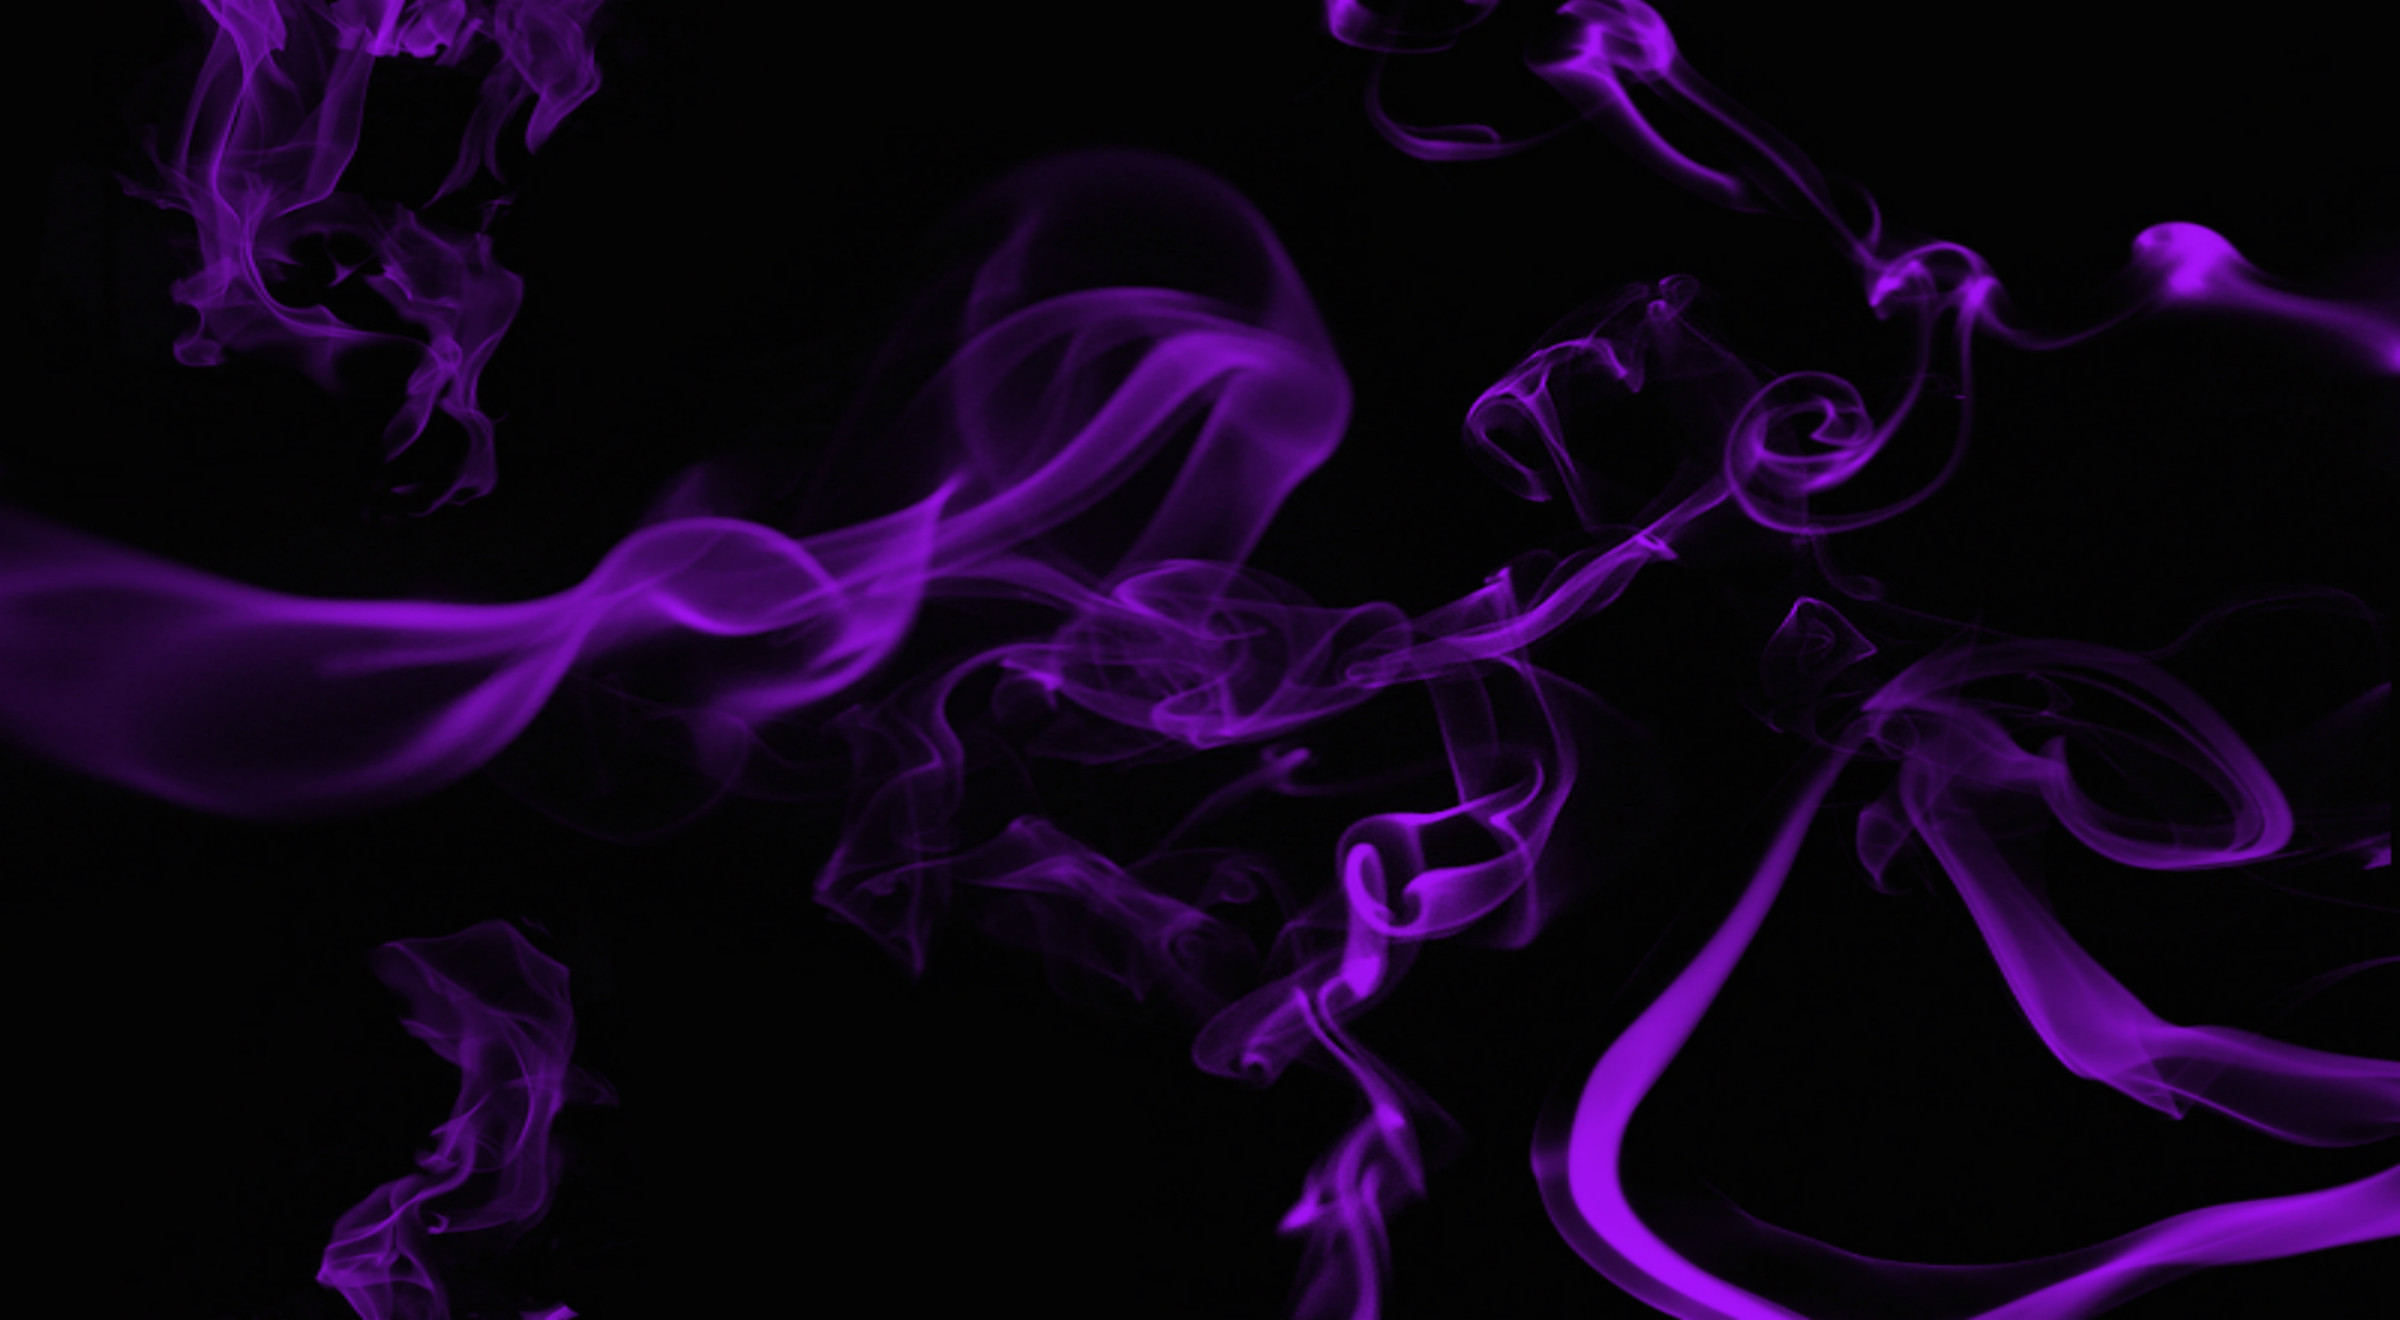 2400x1320 smoke sick background download Wallpaper HD